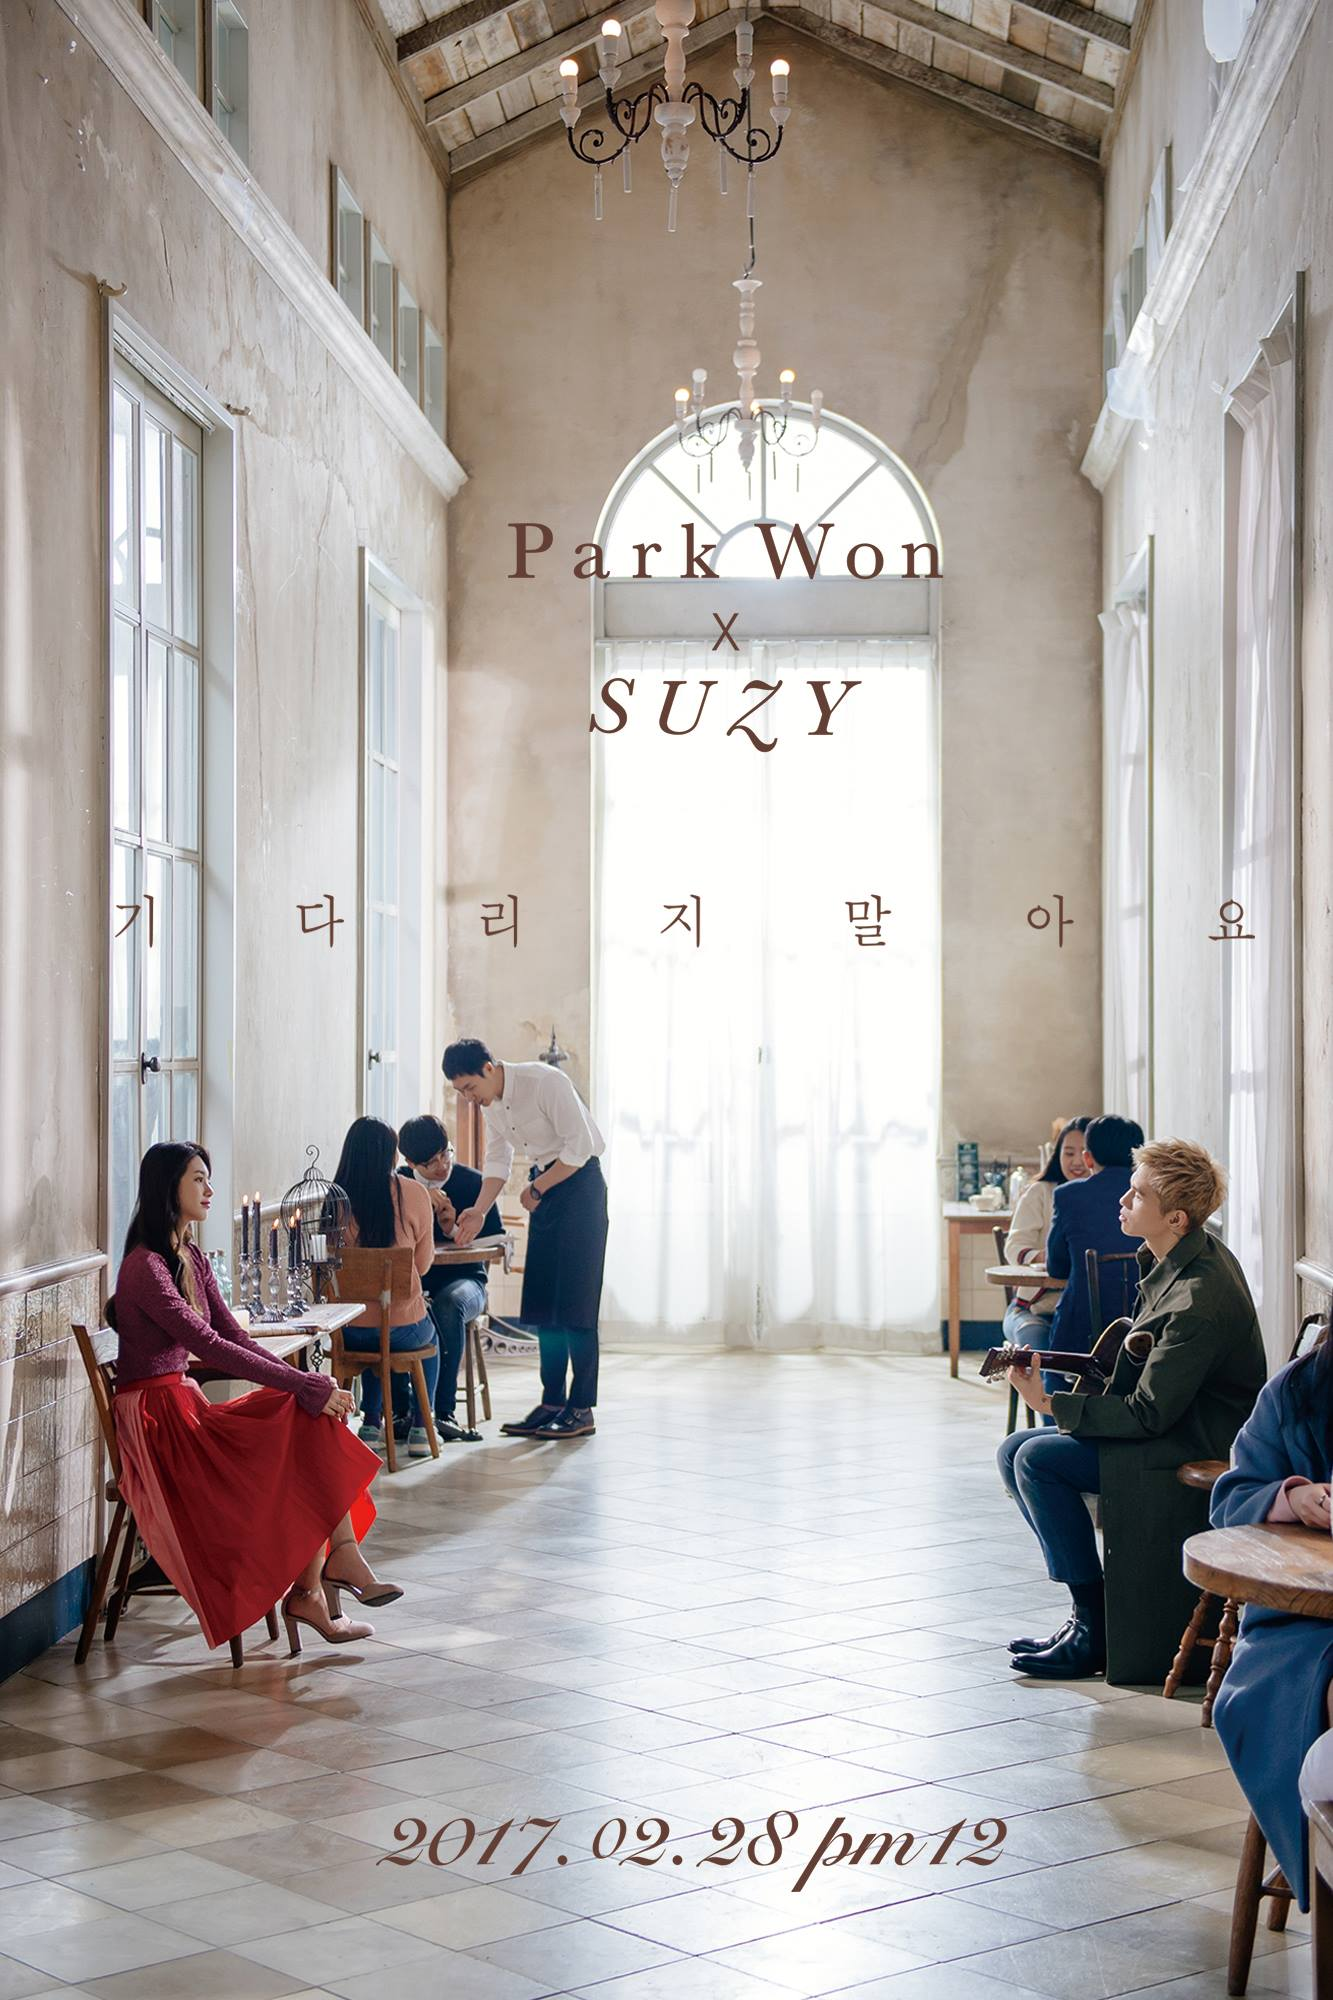 Update: Suzy And Park Won Share More Teaser Images For Upcoming Collaboration